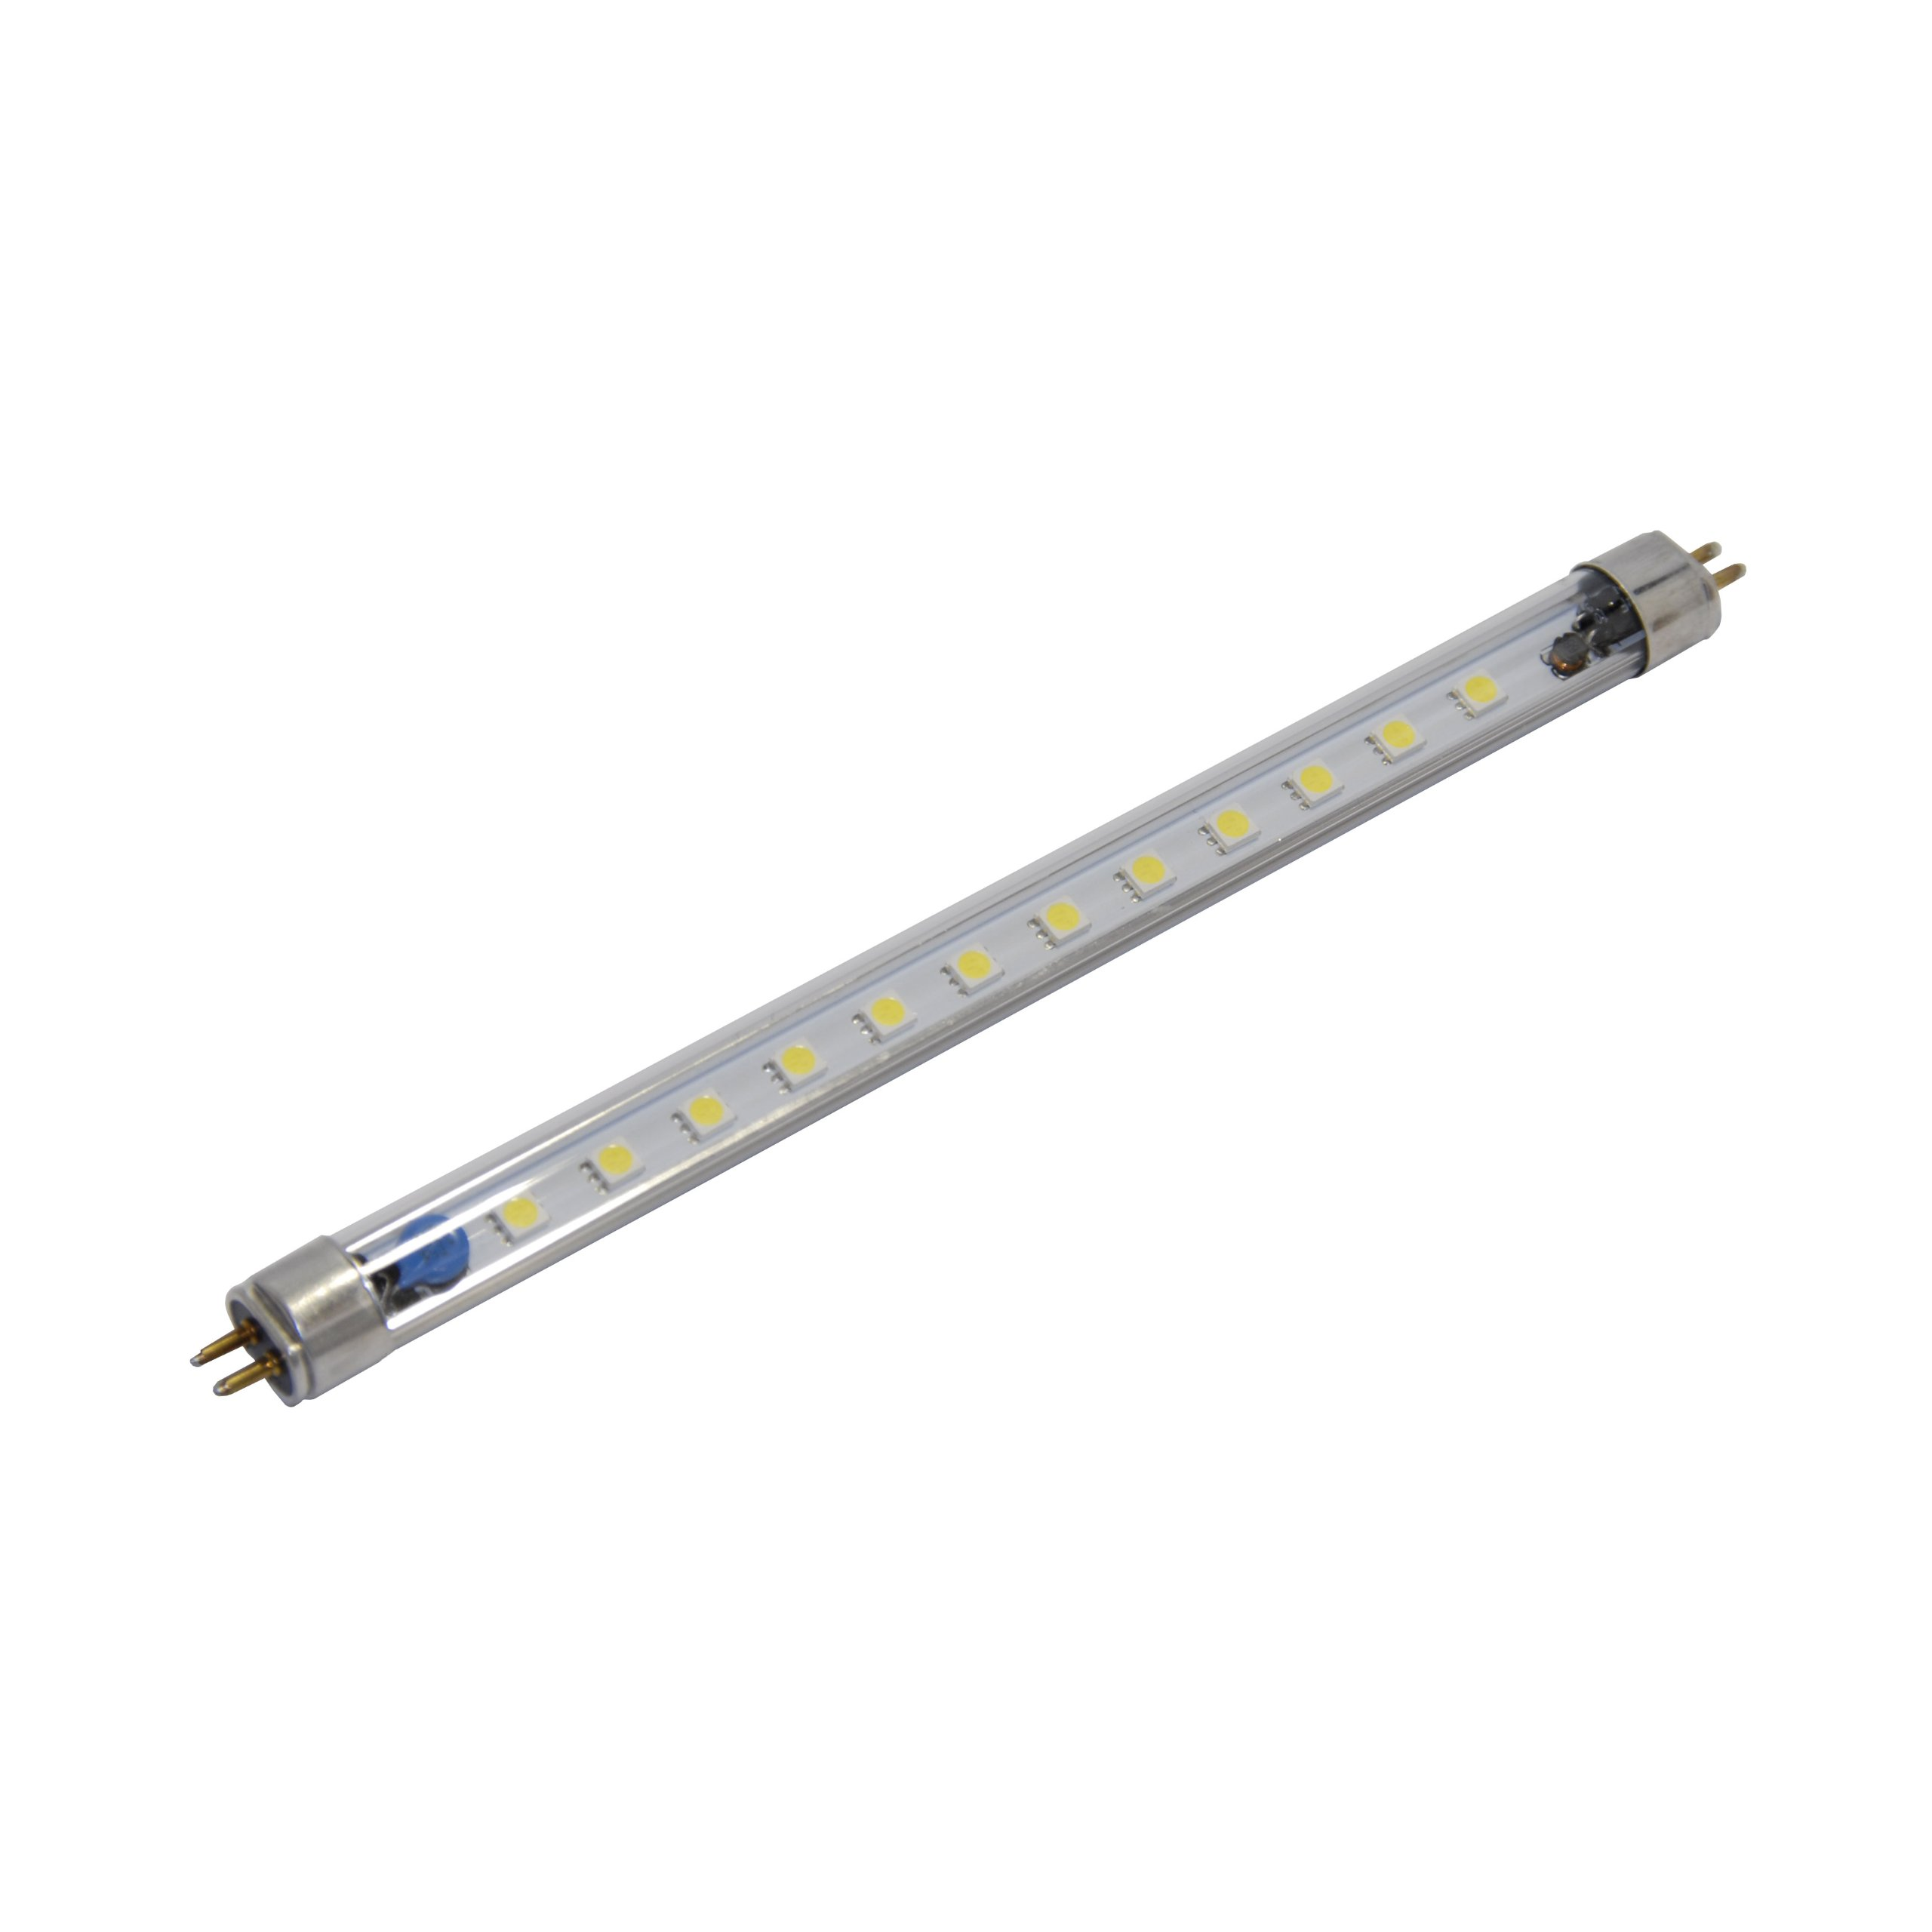 Leyton Lighting 13w T5 Fluorescent tube Free Delivery 515mm excl pins